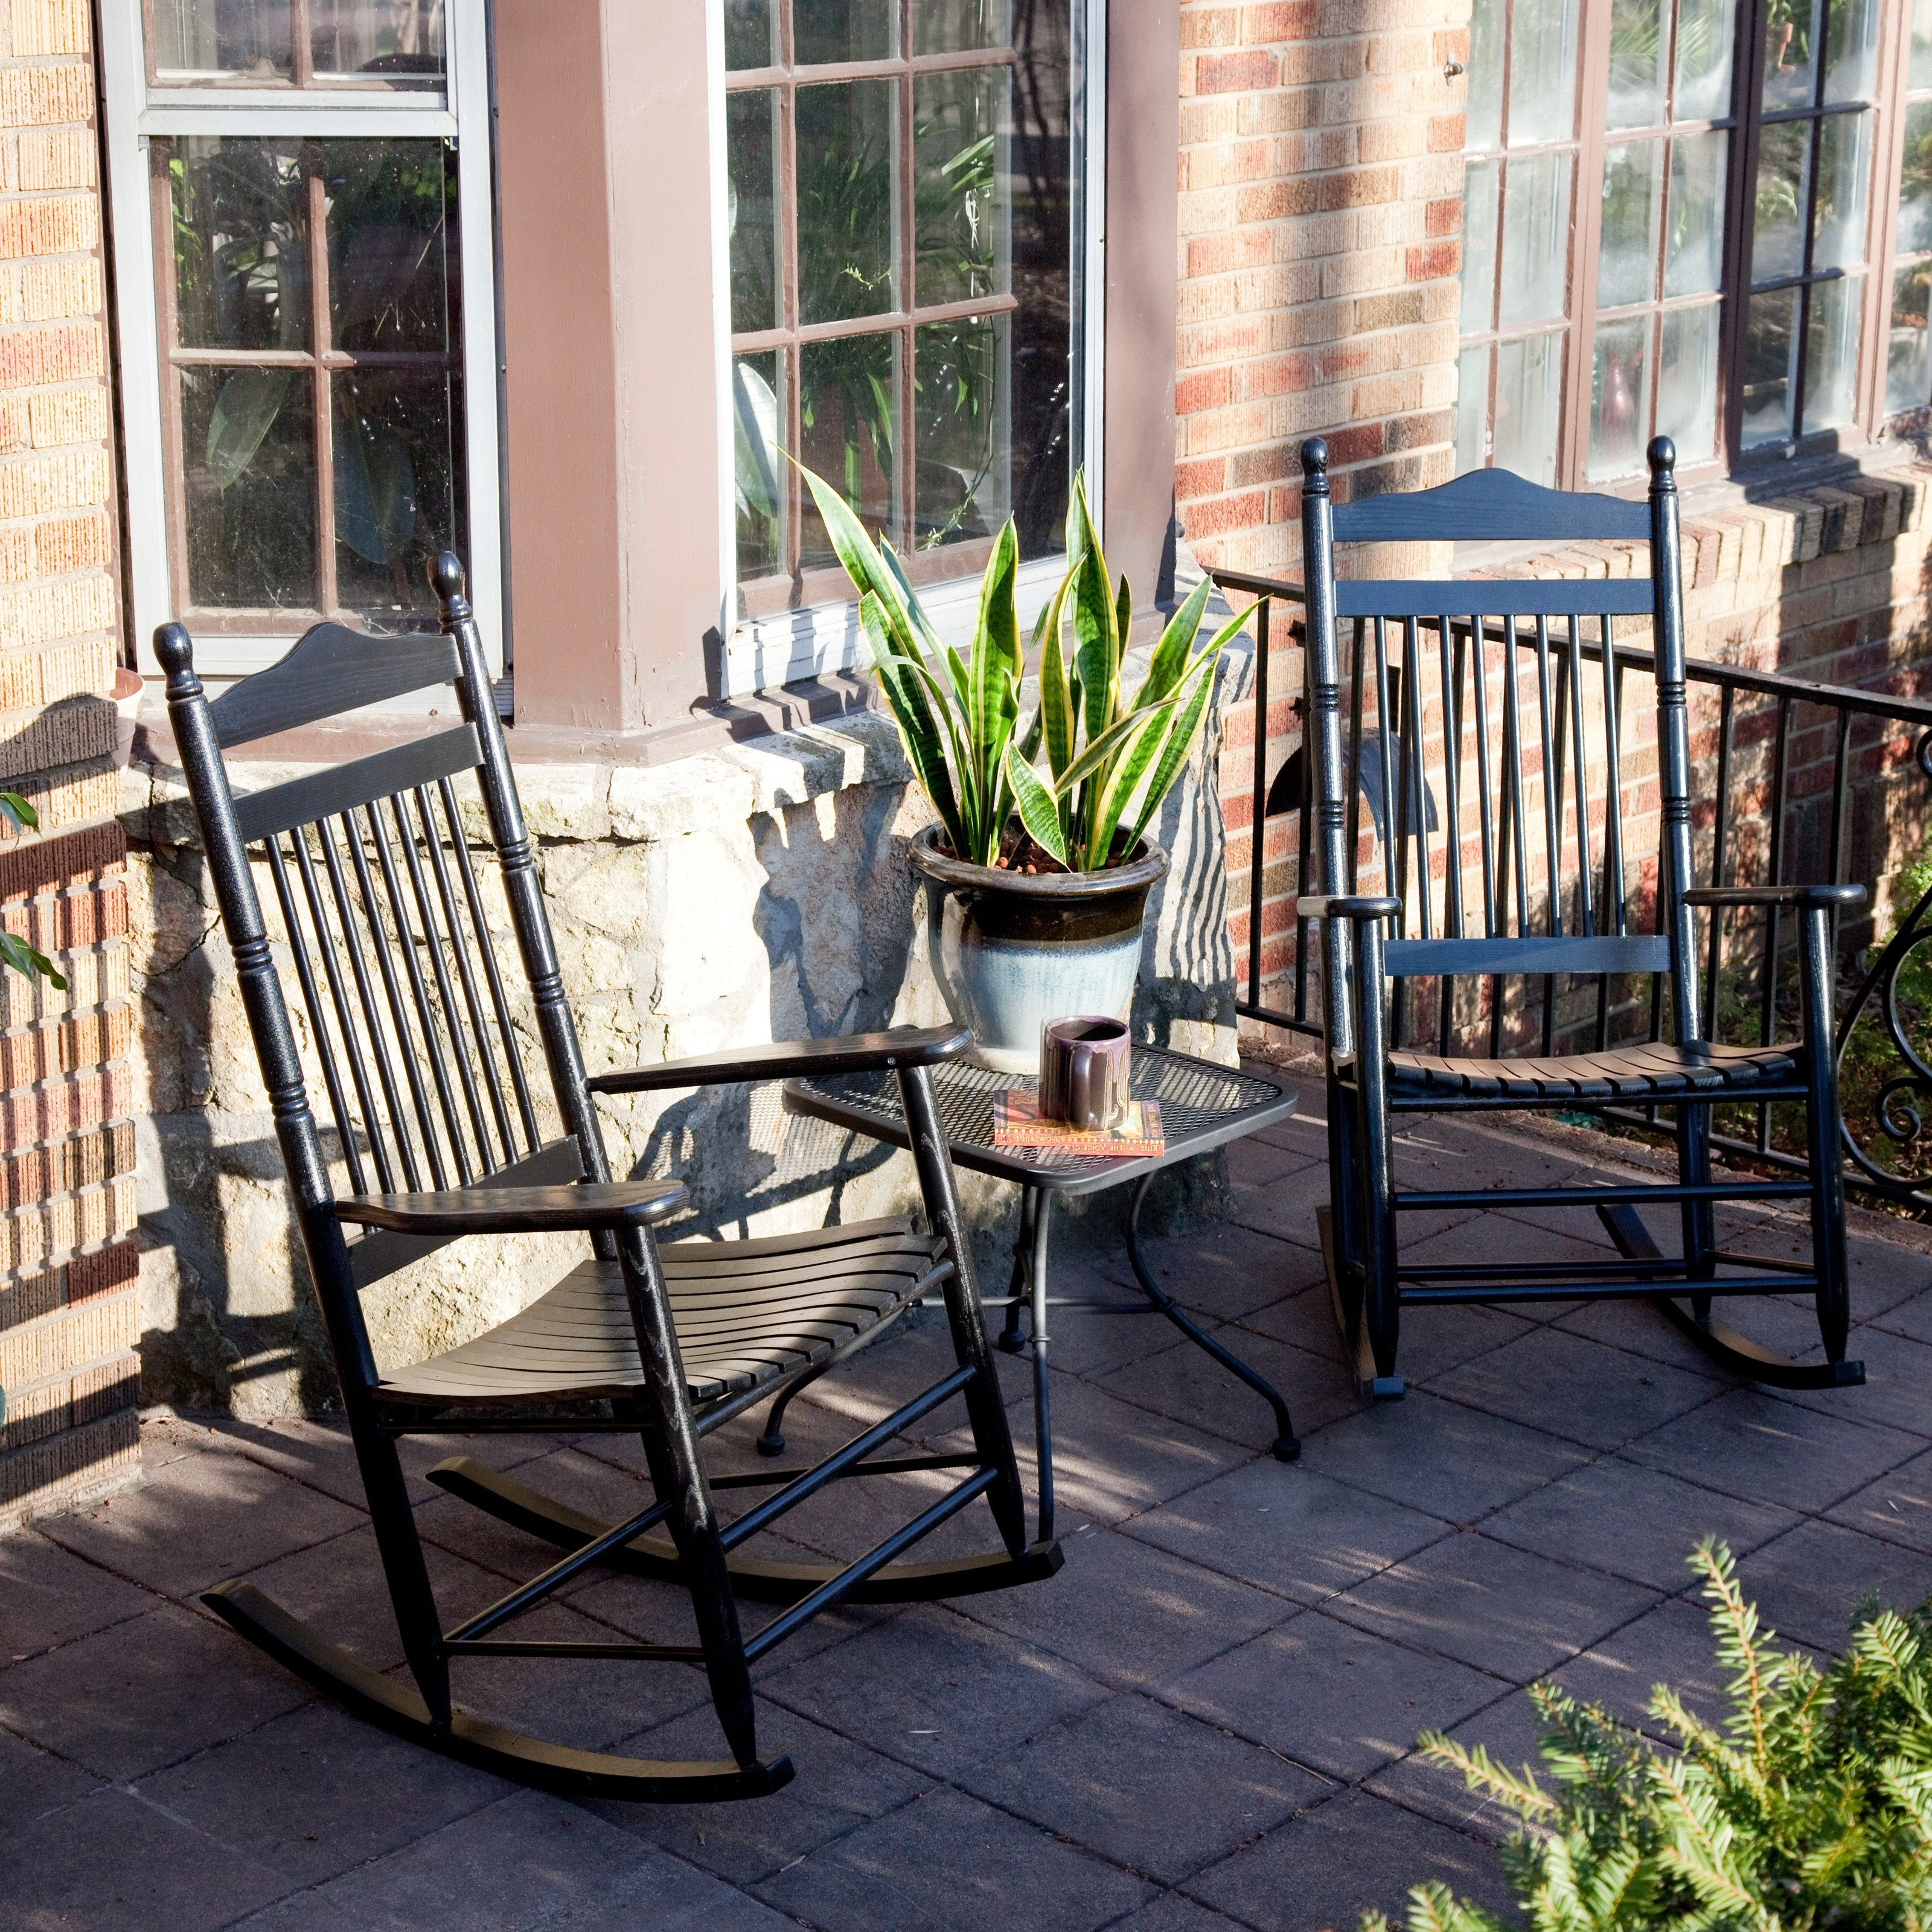 Outdoor Rocking Chairs With Table Regarding Most Recent Dixie Seating Wrightsville Indoor Outdoor Slat Rocking Chairs Wicker (View 13 of 15)